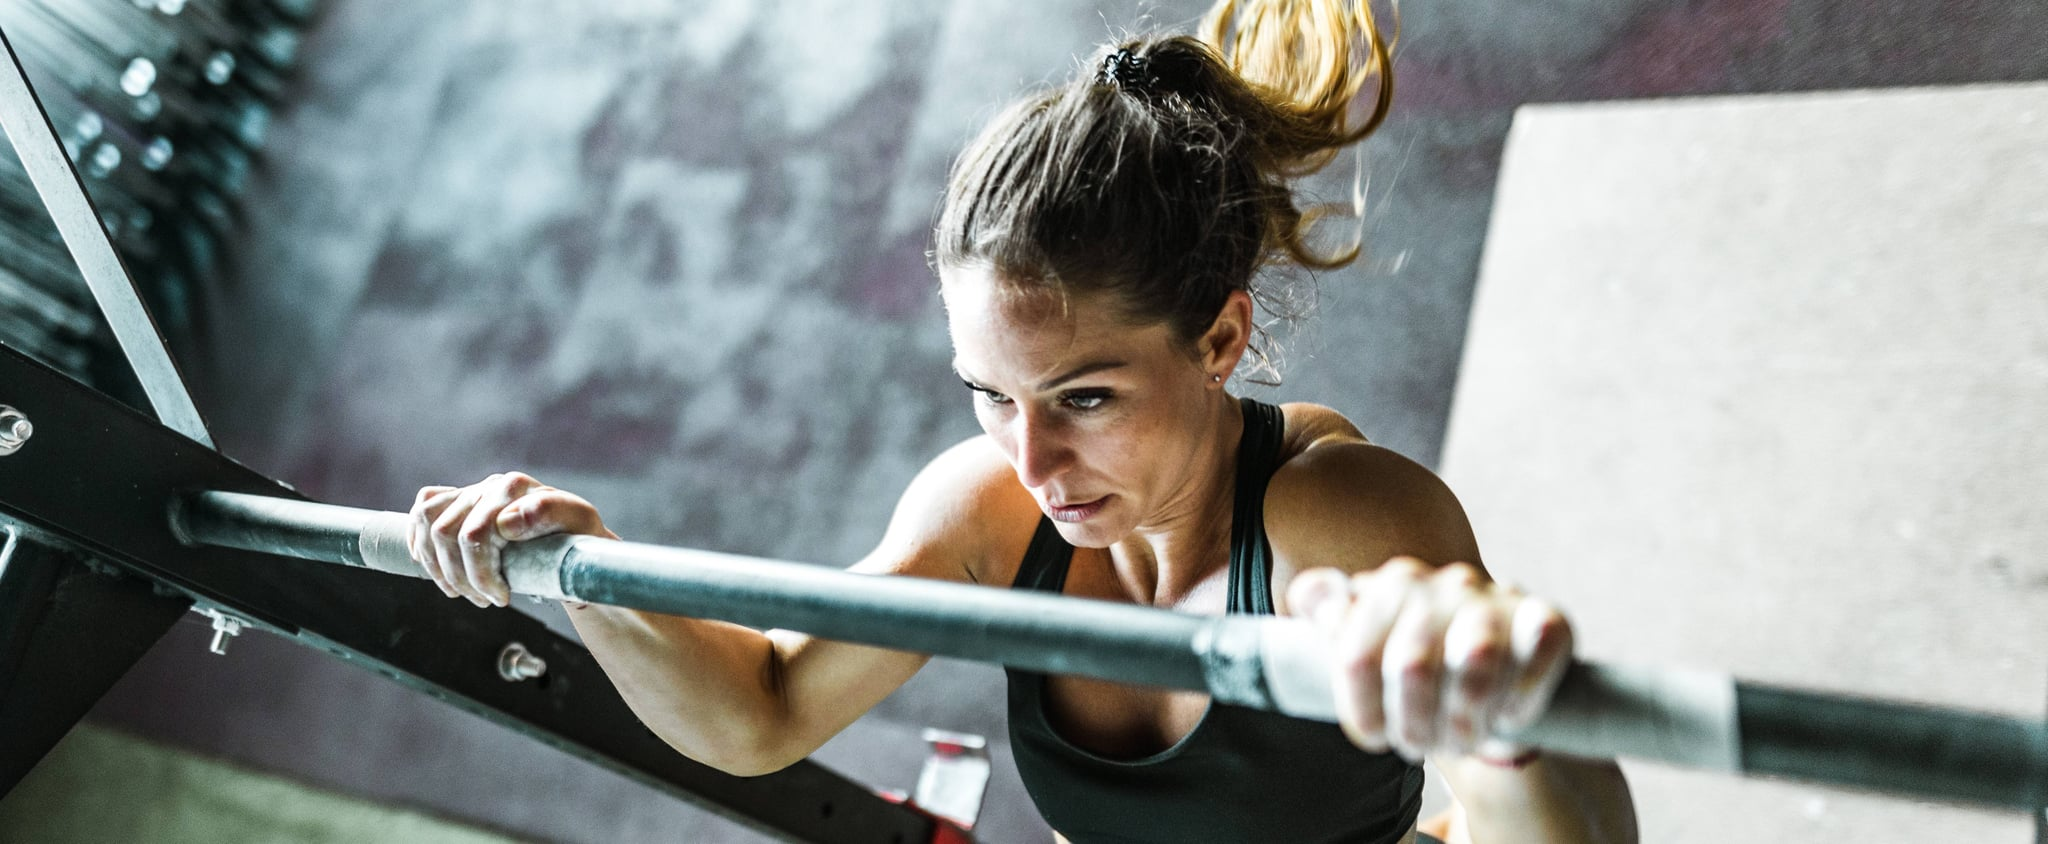 Exercises For Pull-Ups